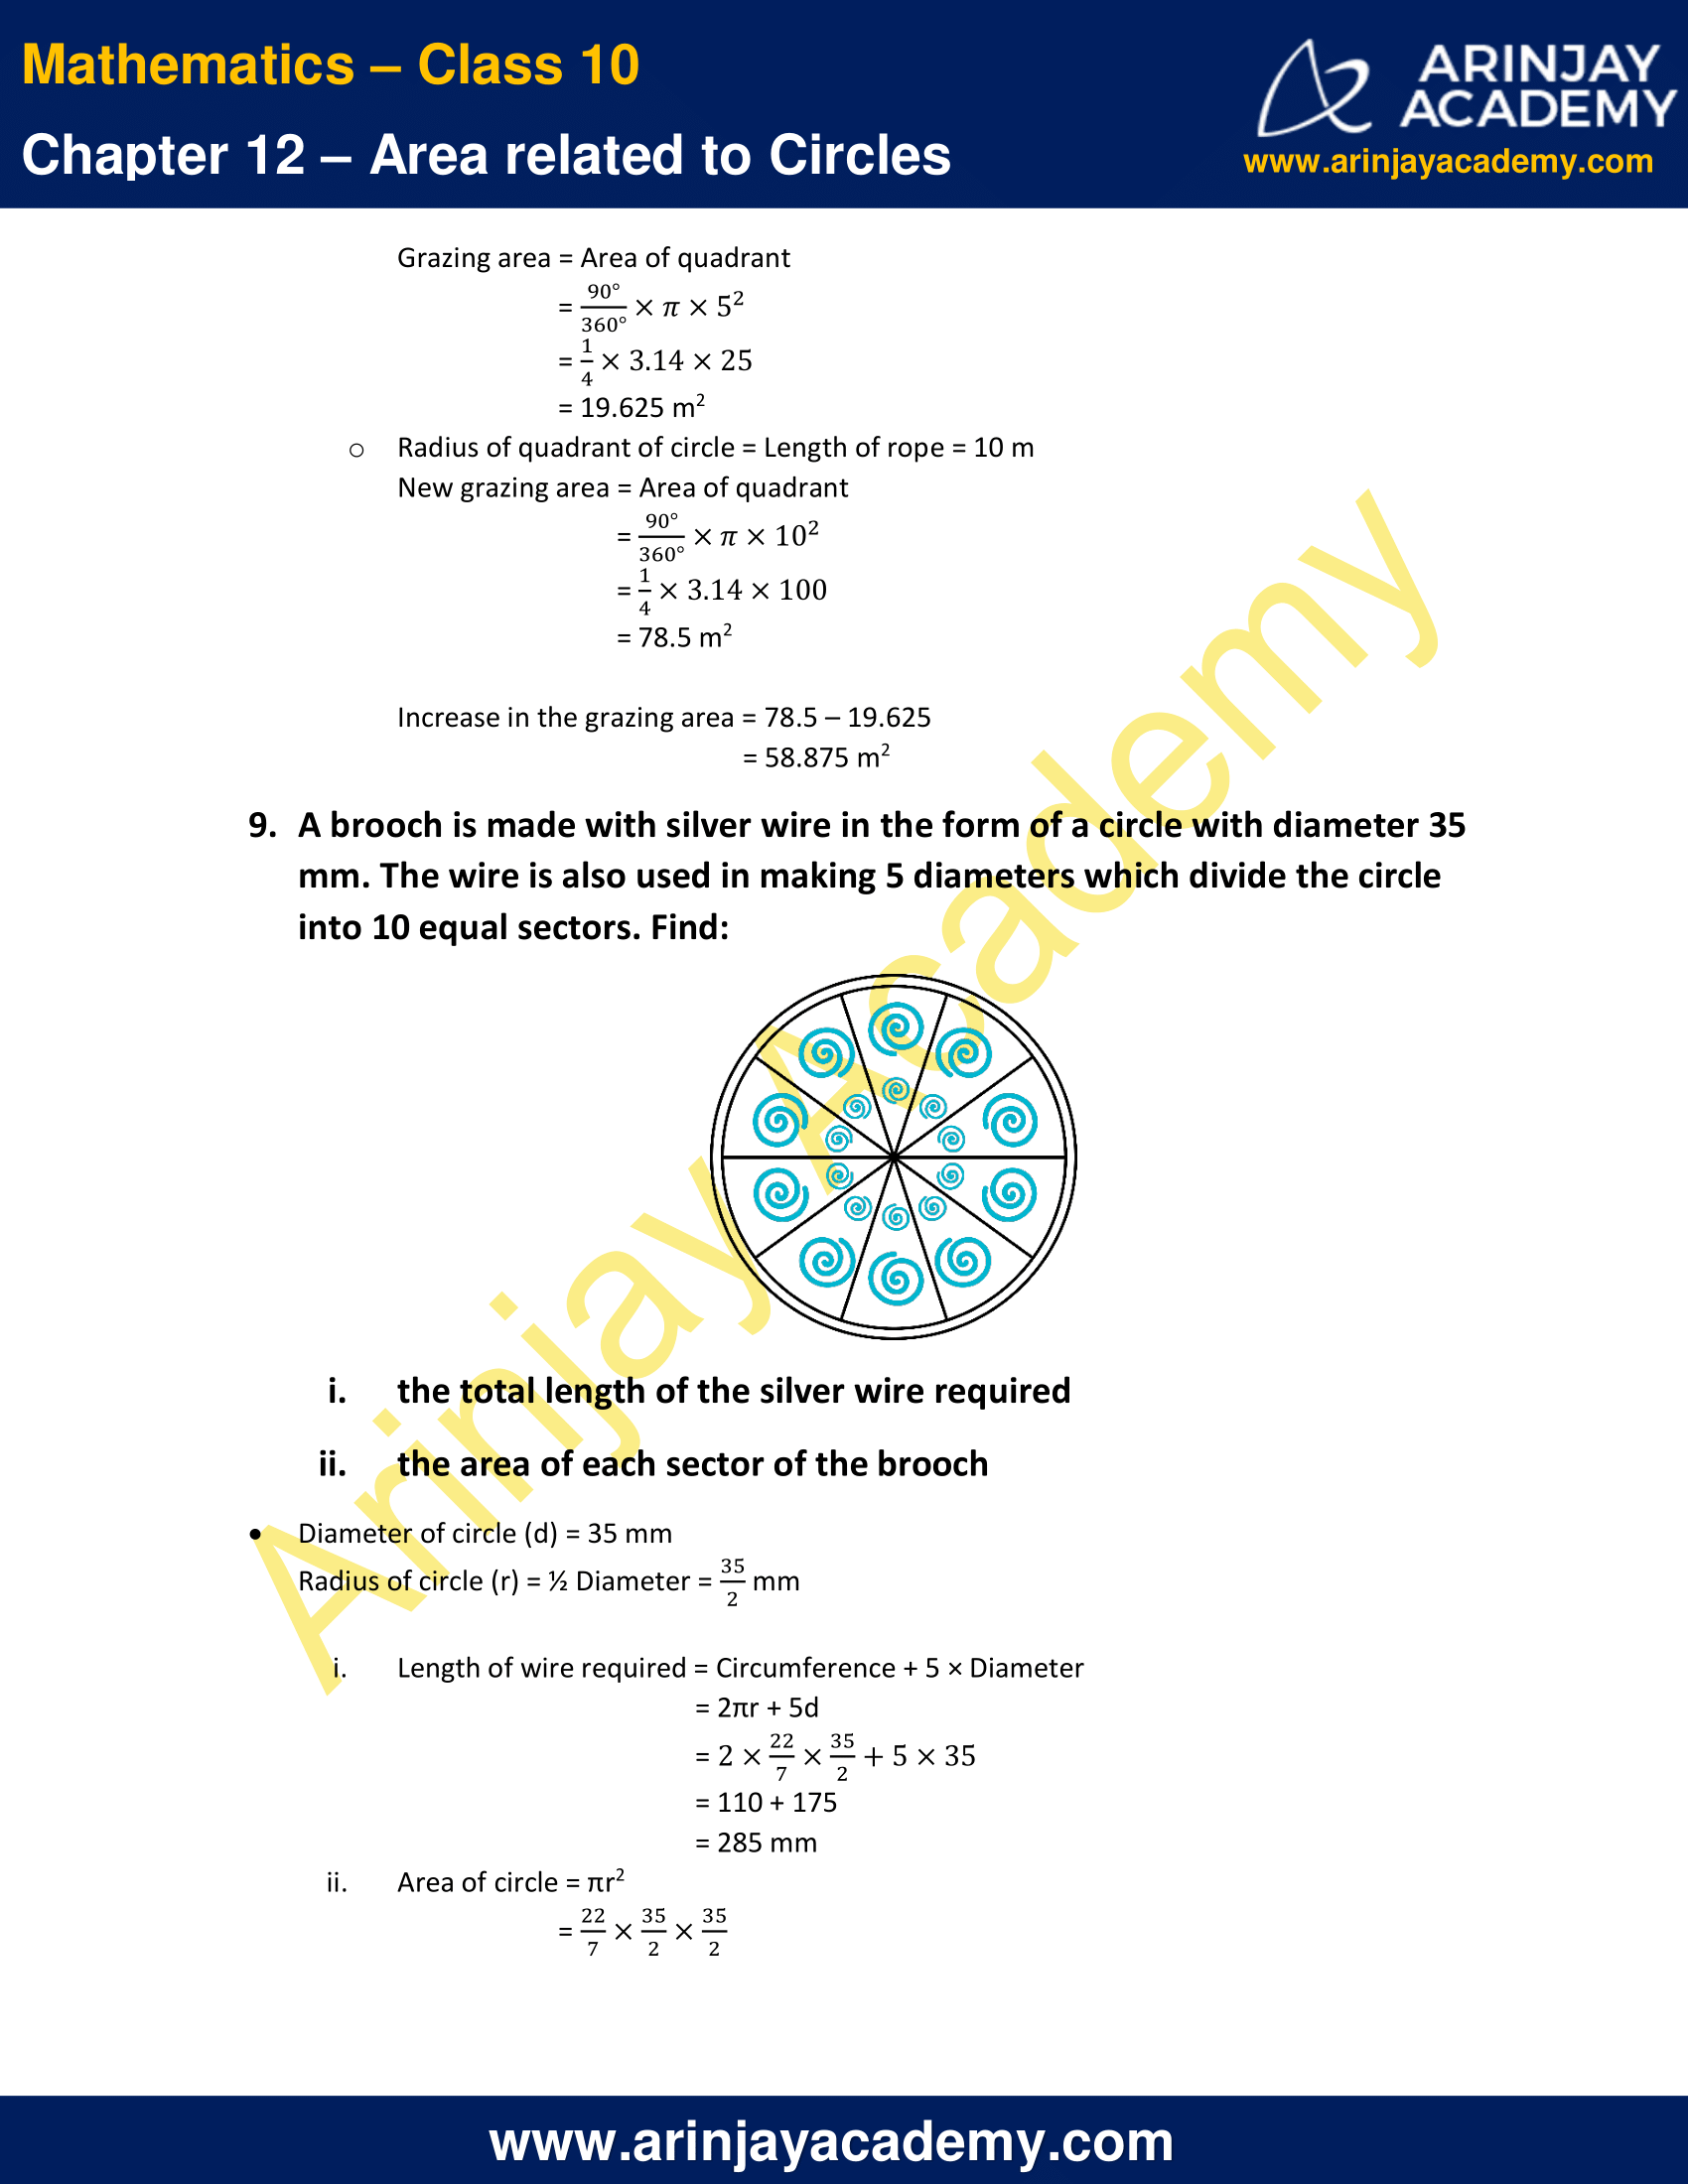 NCERT Solutions For Class 10 Maths Chapter 12 Exercise 12.2 image 6